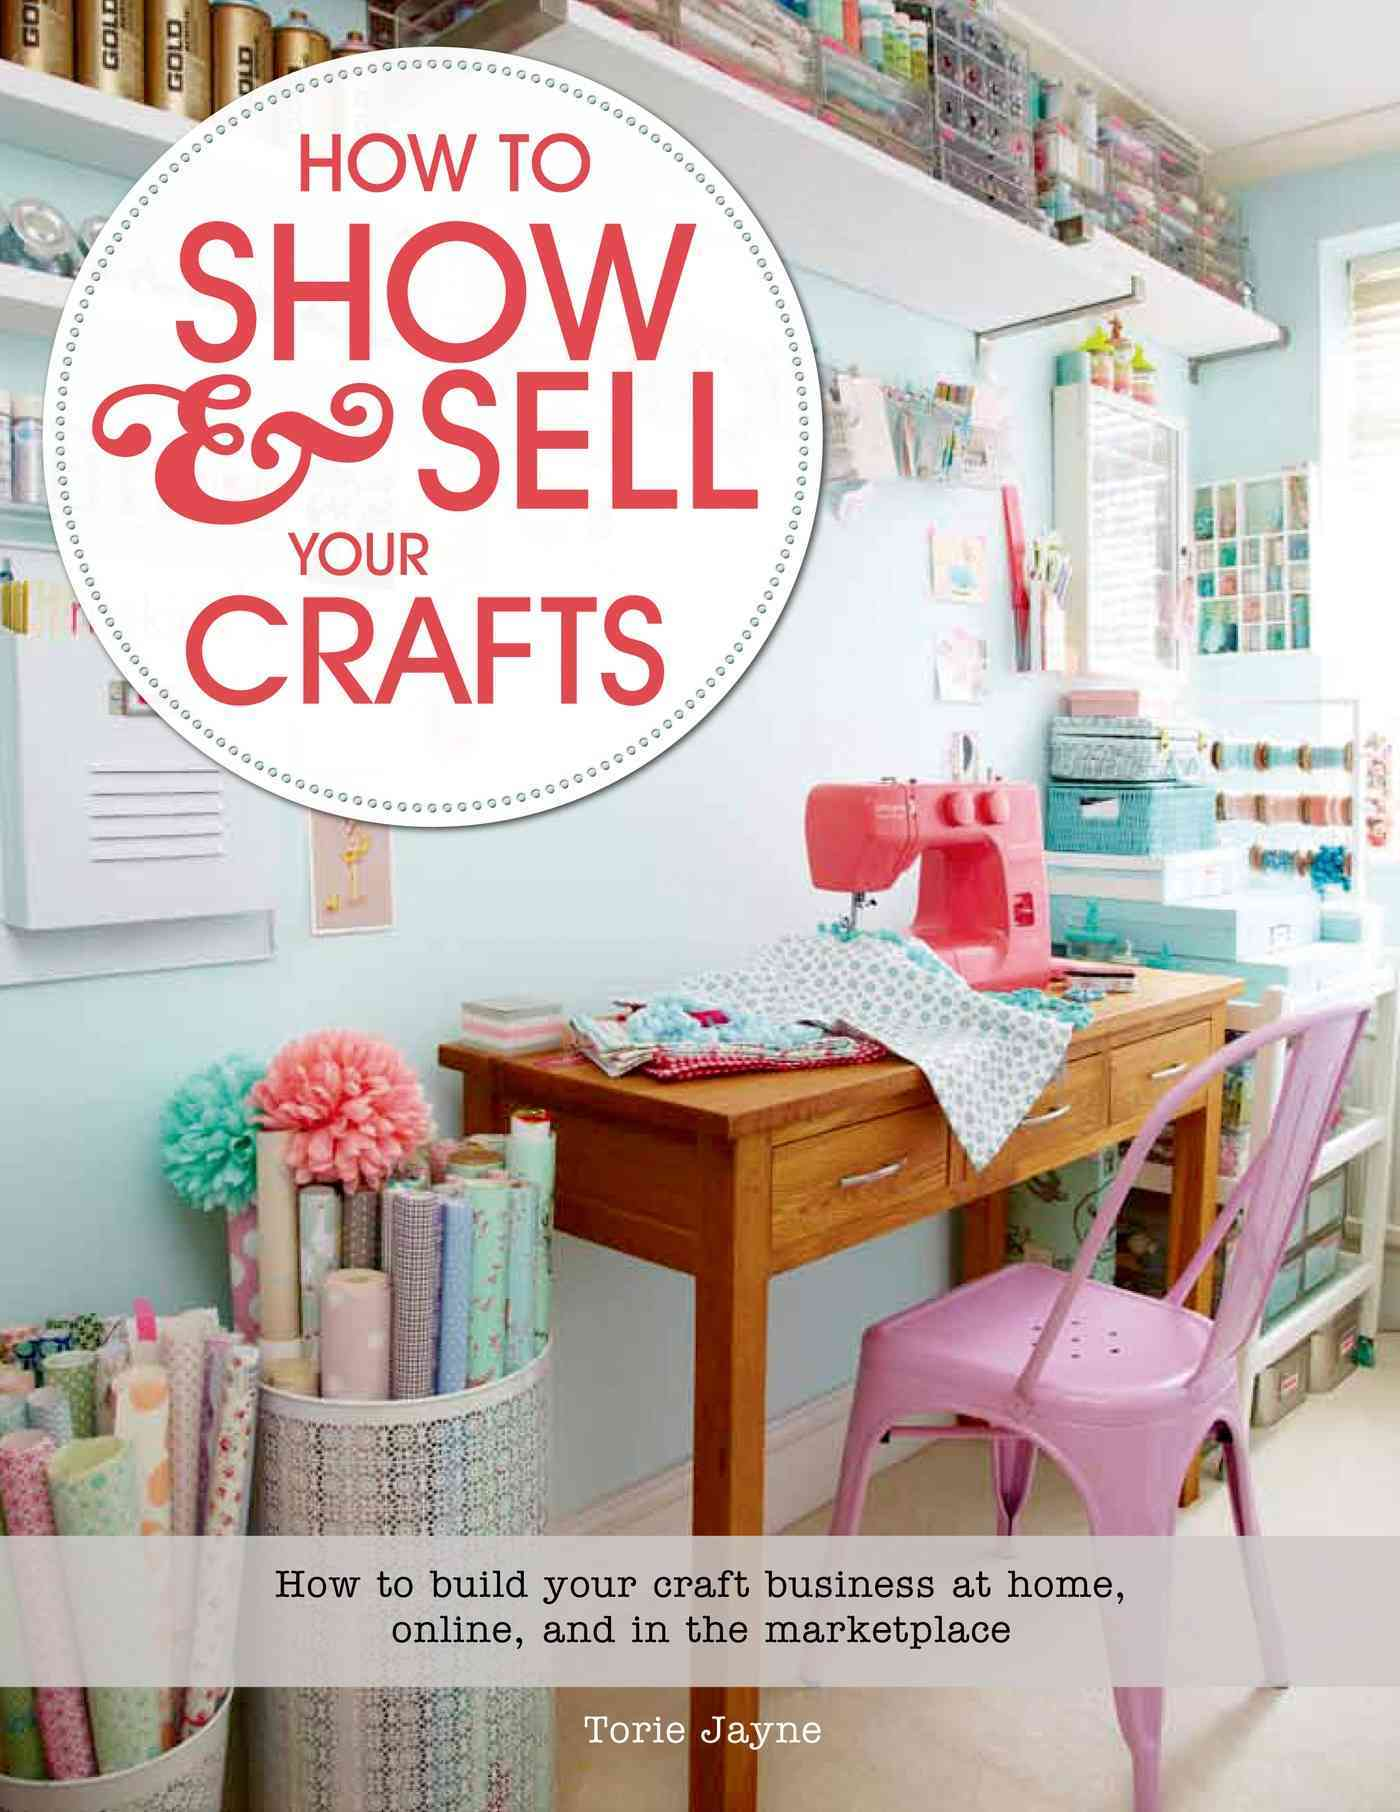 How to Show & Sell Your Crafts By Jayne, Torie